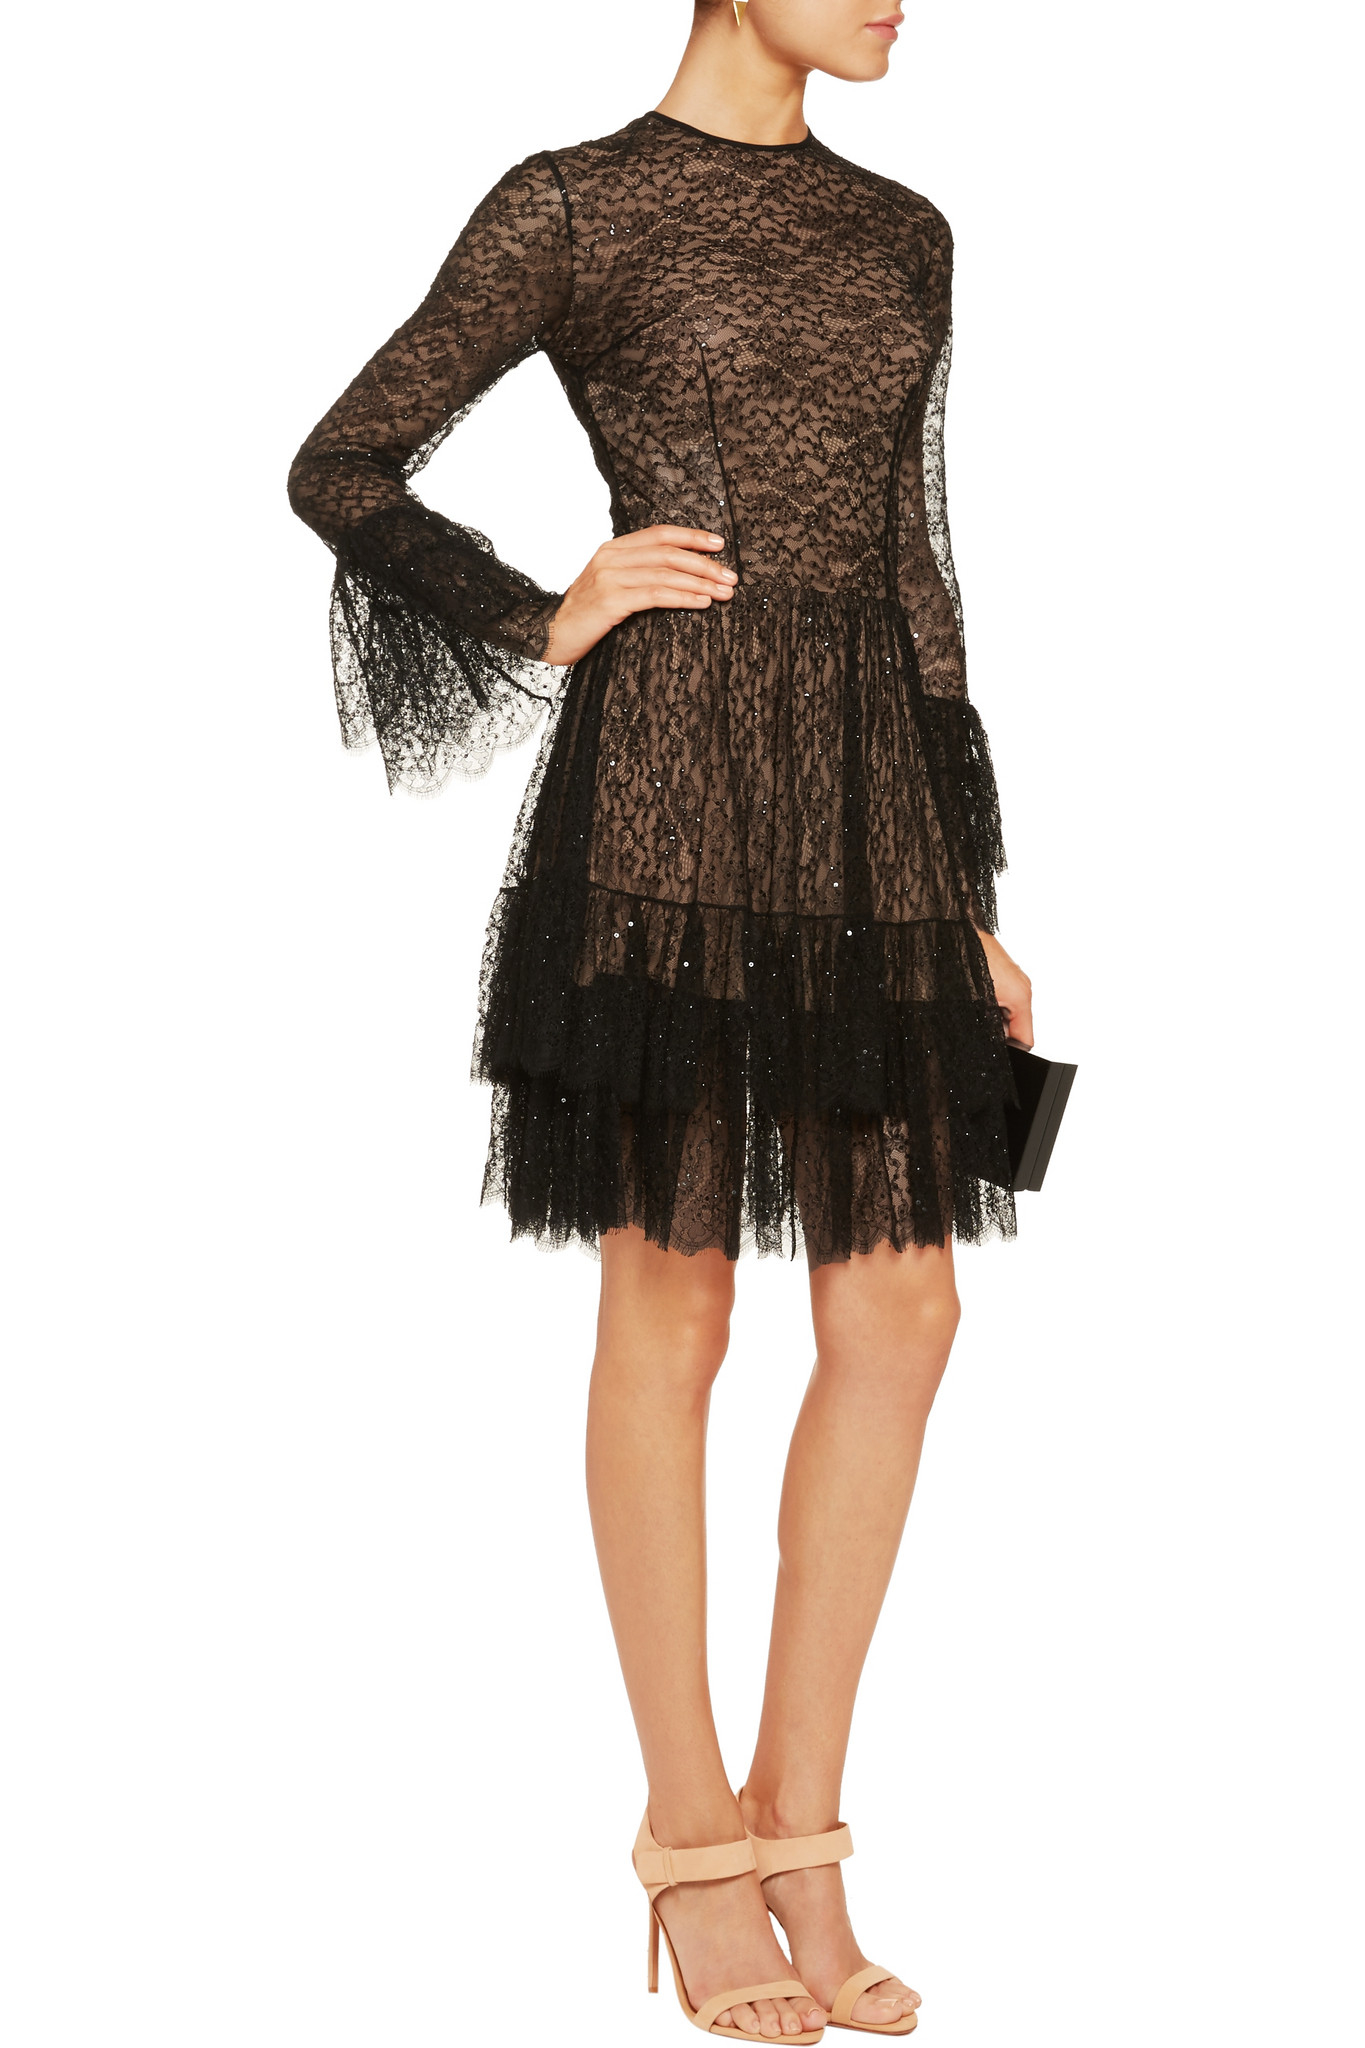 Michael Kors Sequin Embellished Tiered Chantilly Lace